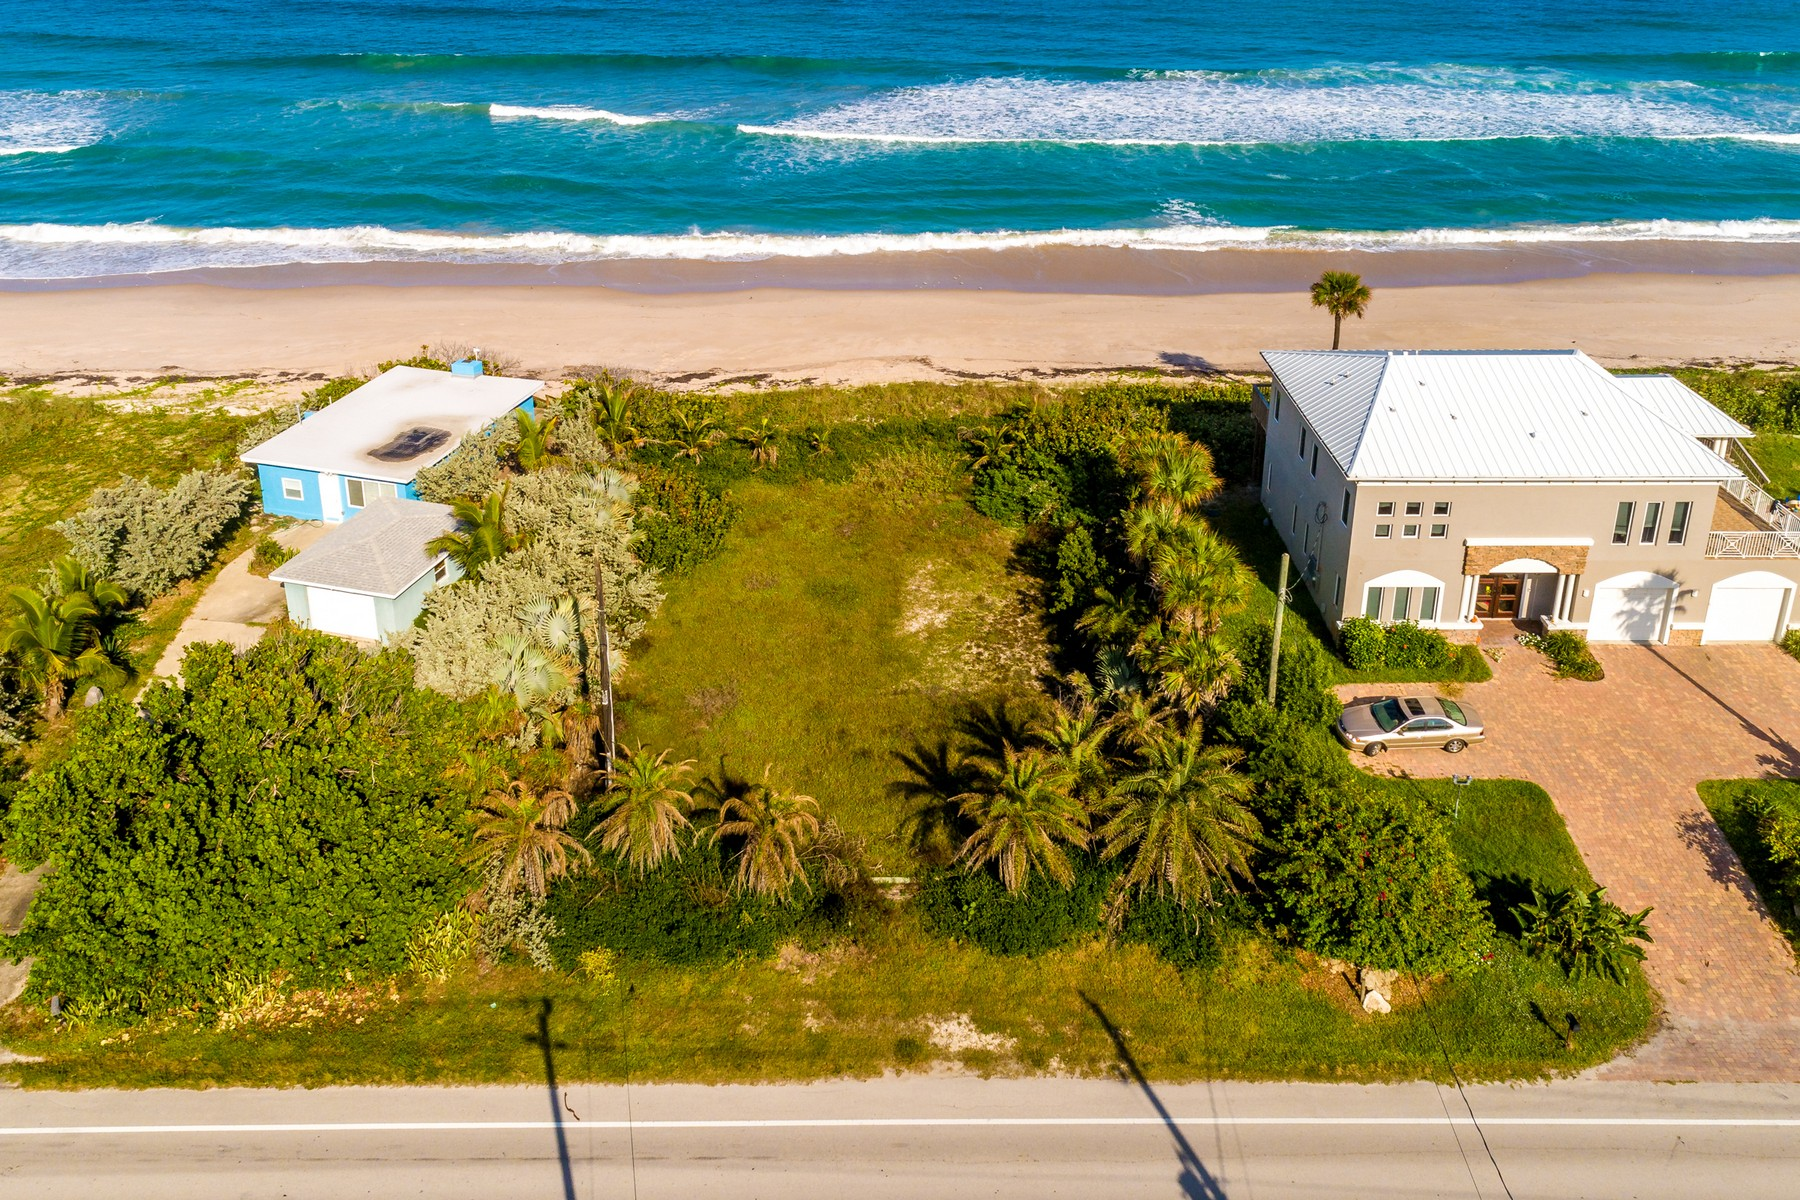 Land for Sale at Beautiful Oceanfront Lot in South Beaches 6945 Highway A1A Melbourne Beach, Florida 32951 United States